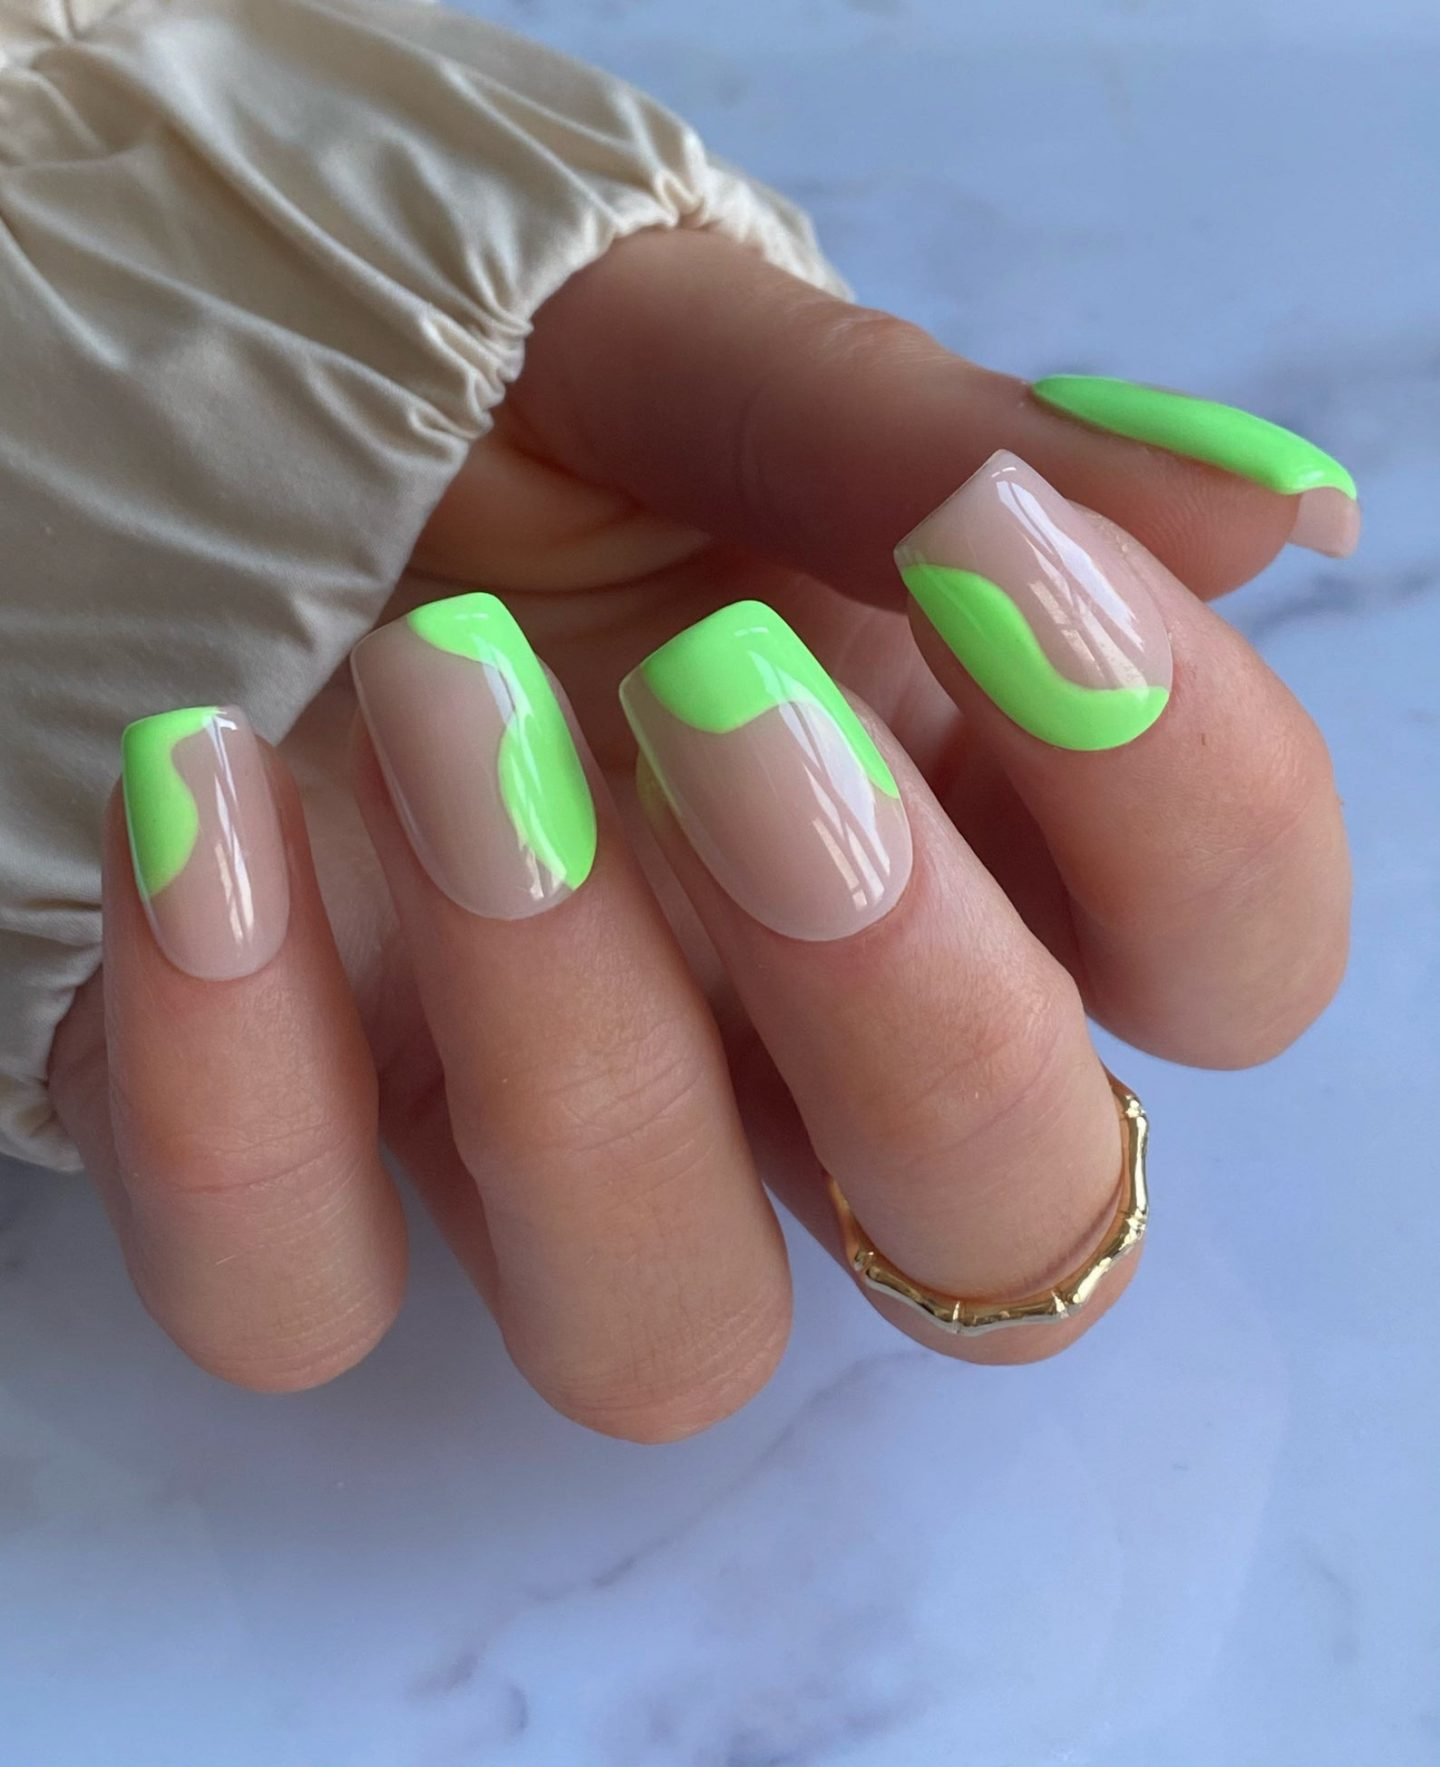 Neon green abstract nails with swirls